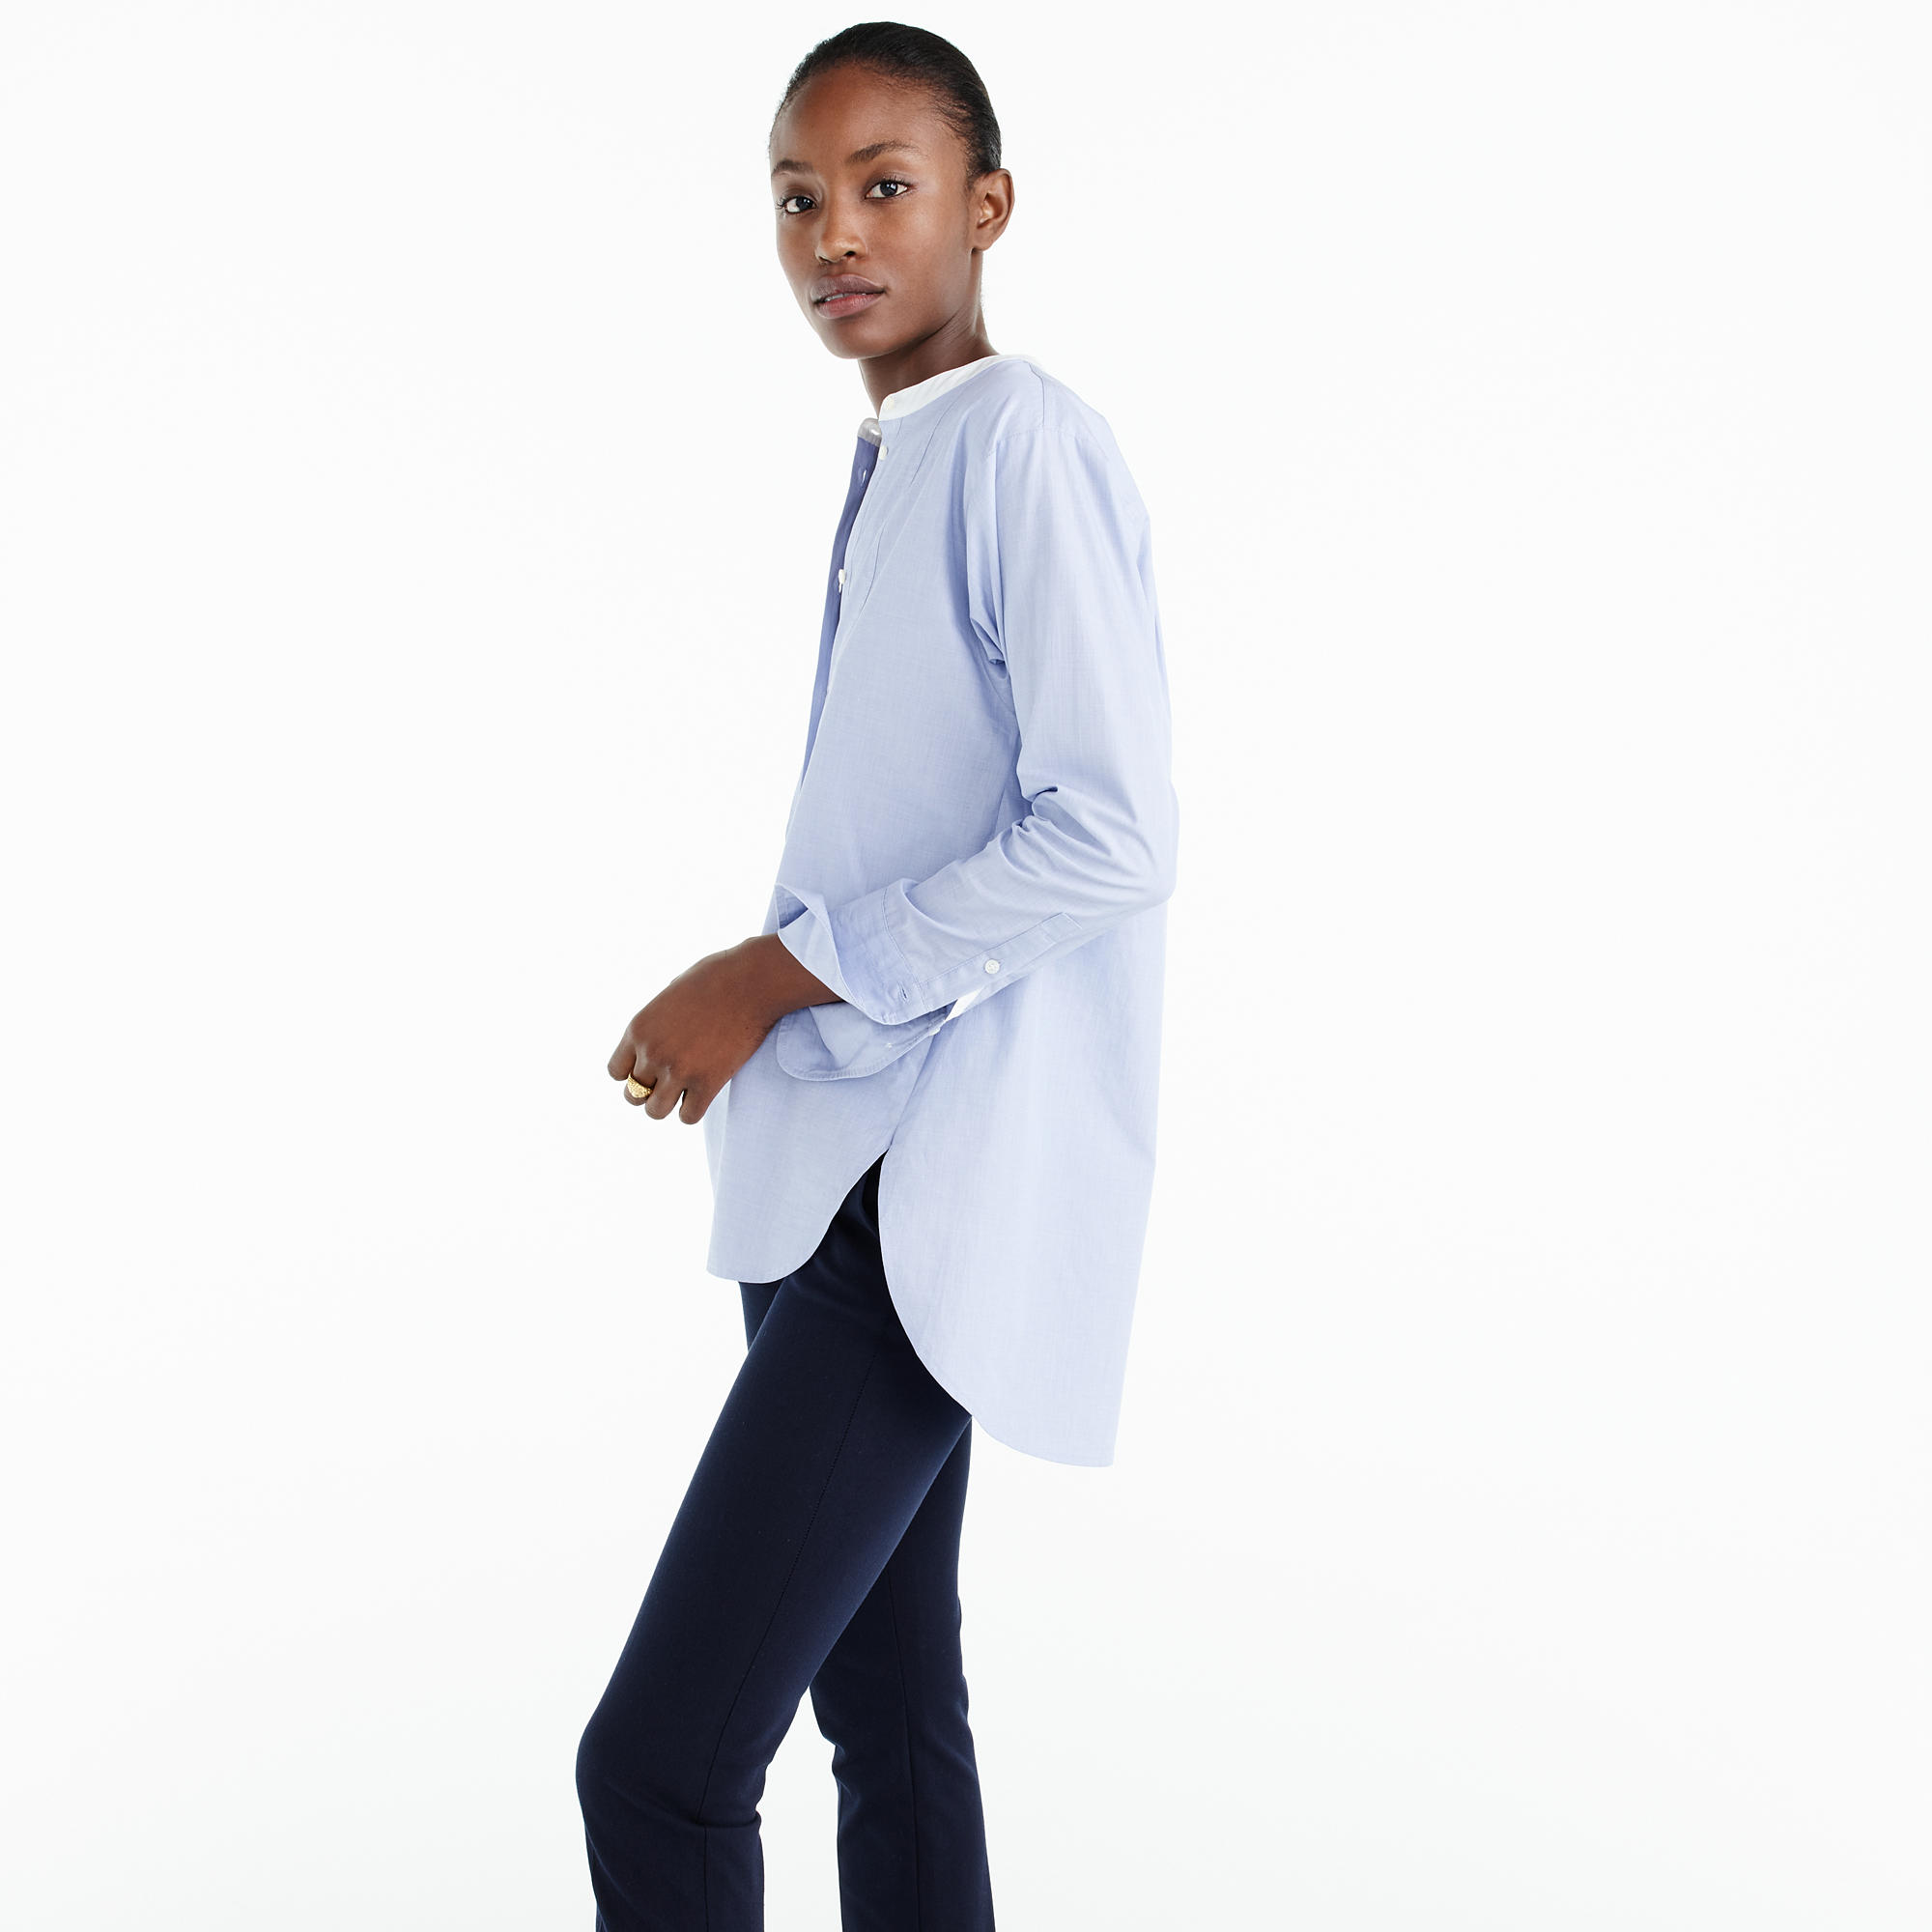 Thomas Mason For J.Crew Collarless Shirt : Women's Shirts | J.Crew